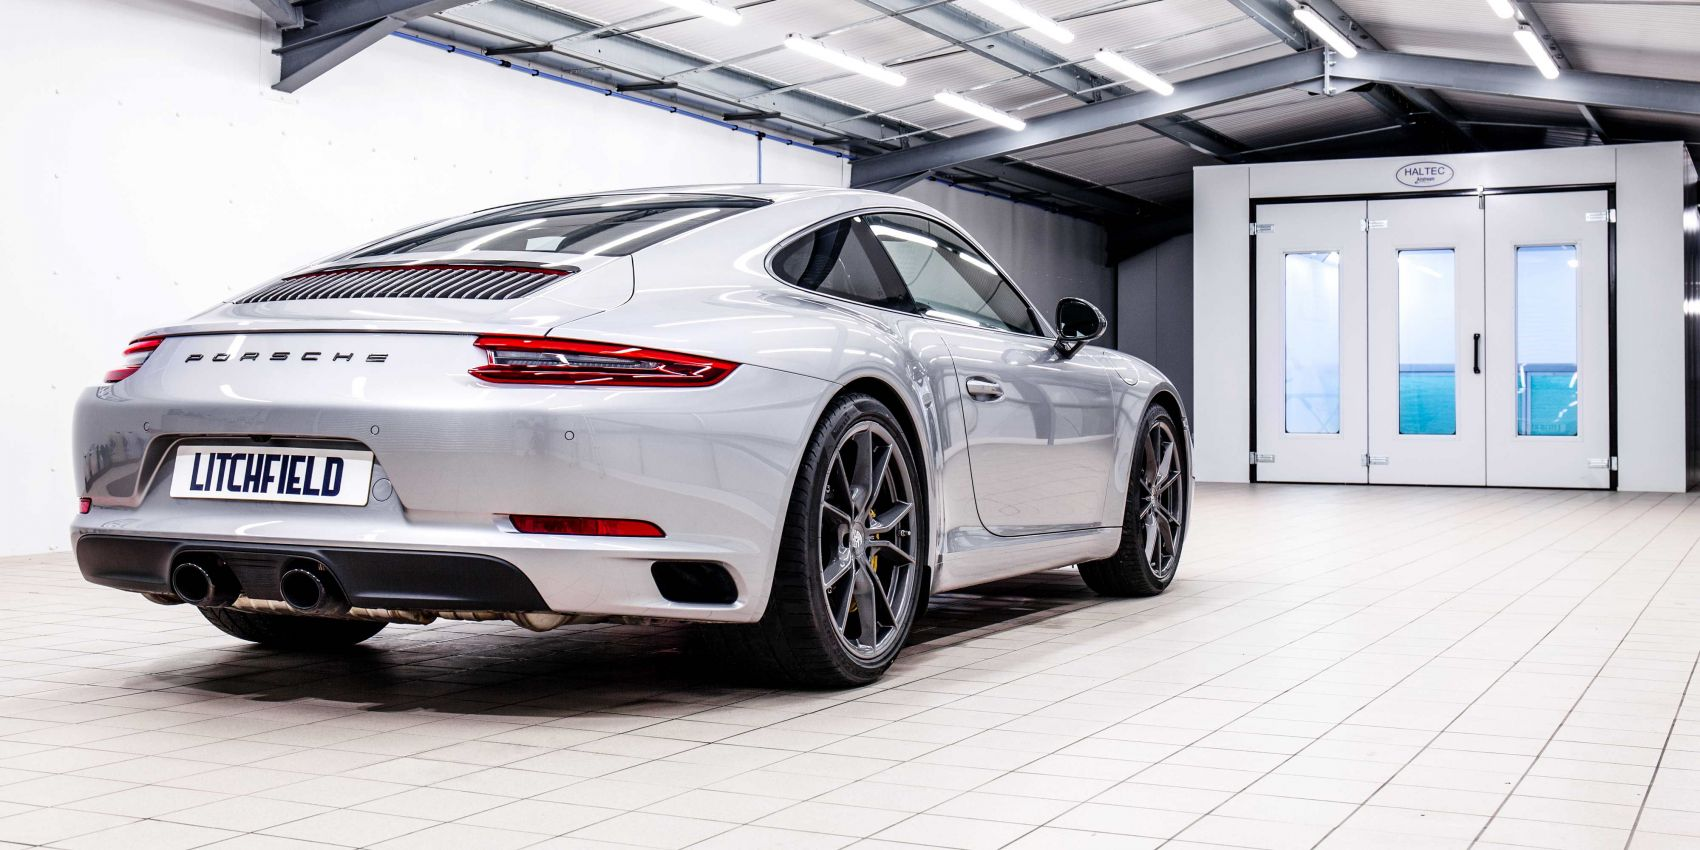 Paint Protection Measures